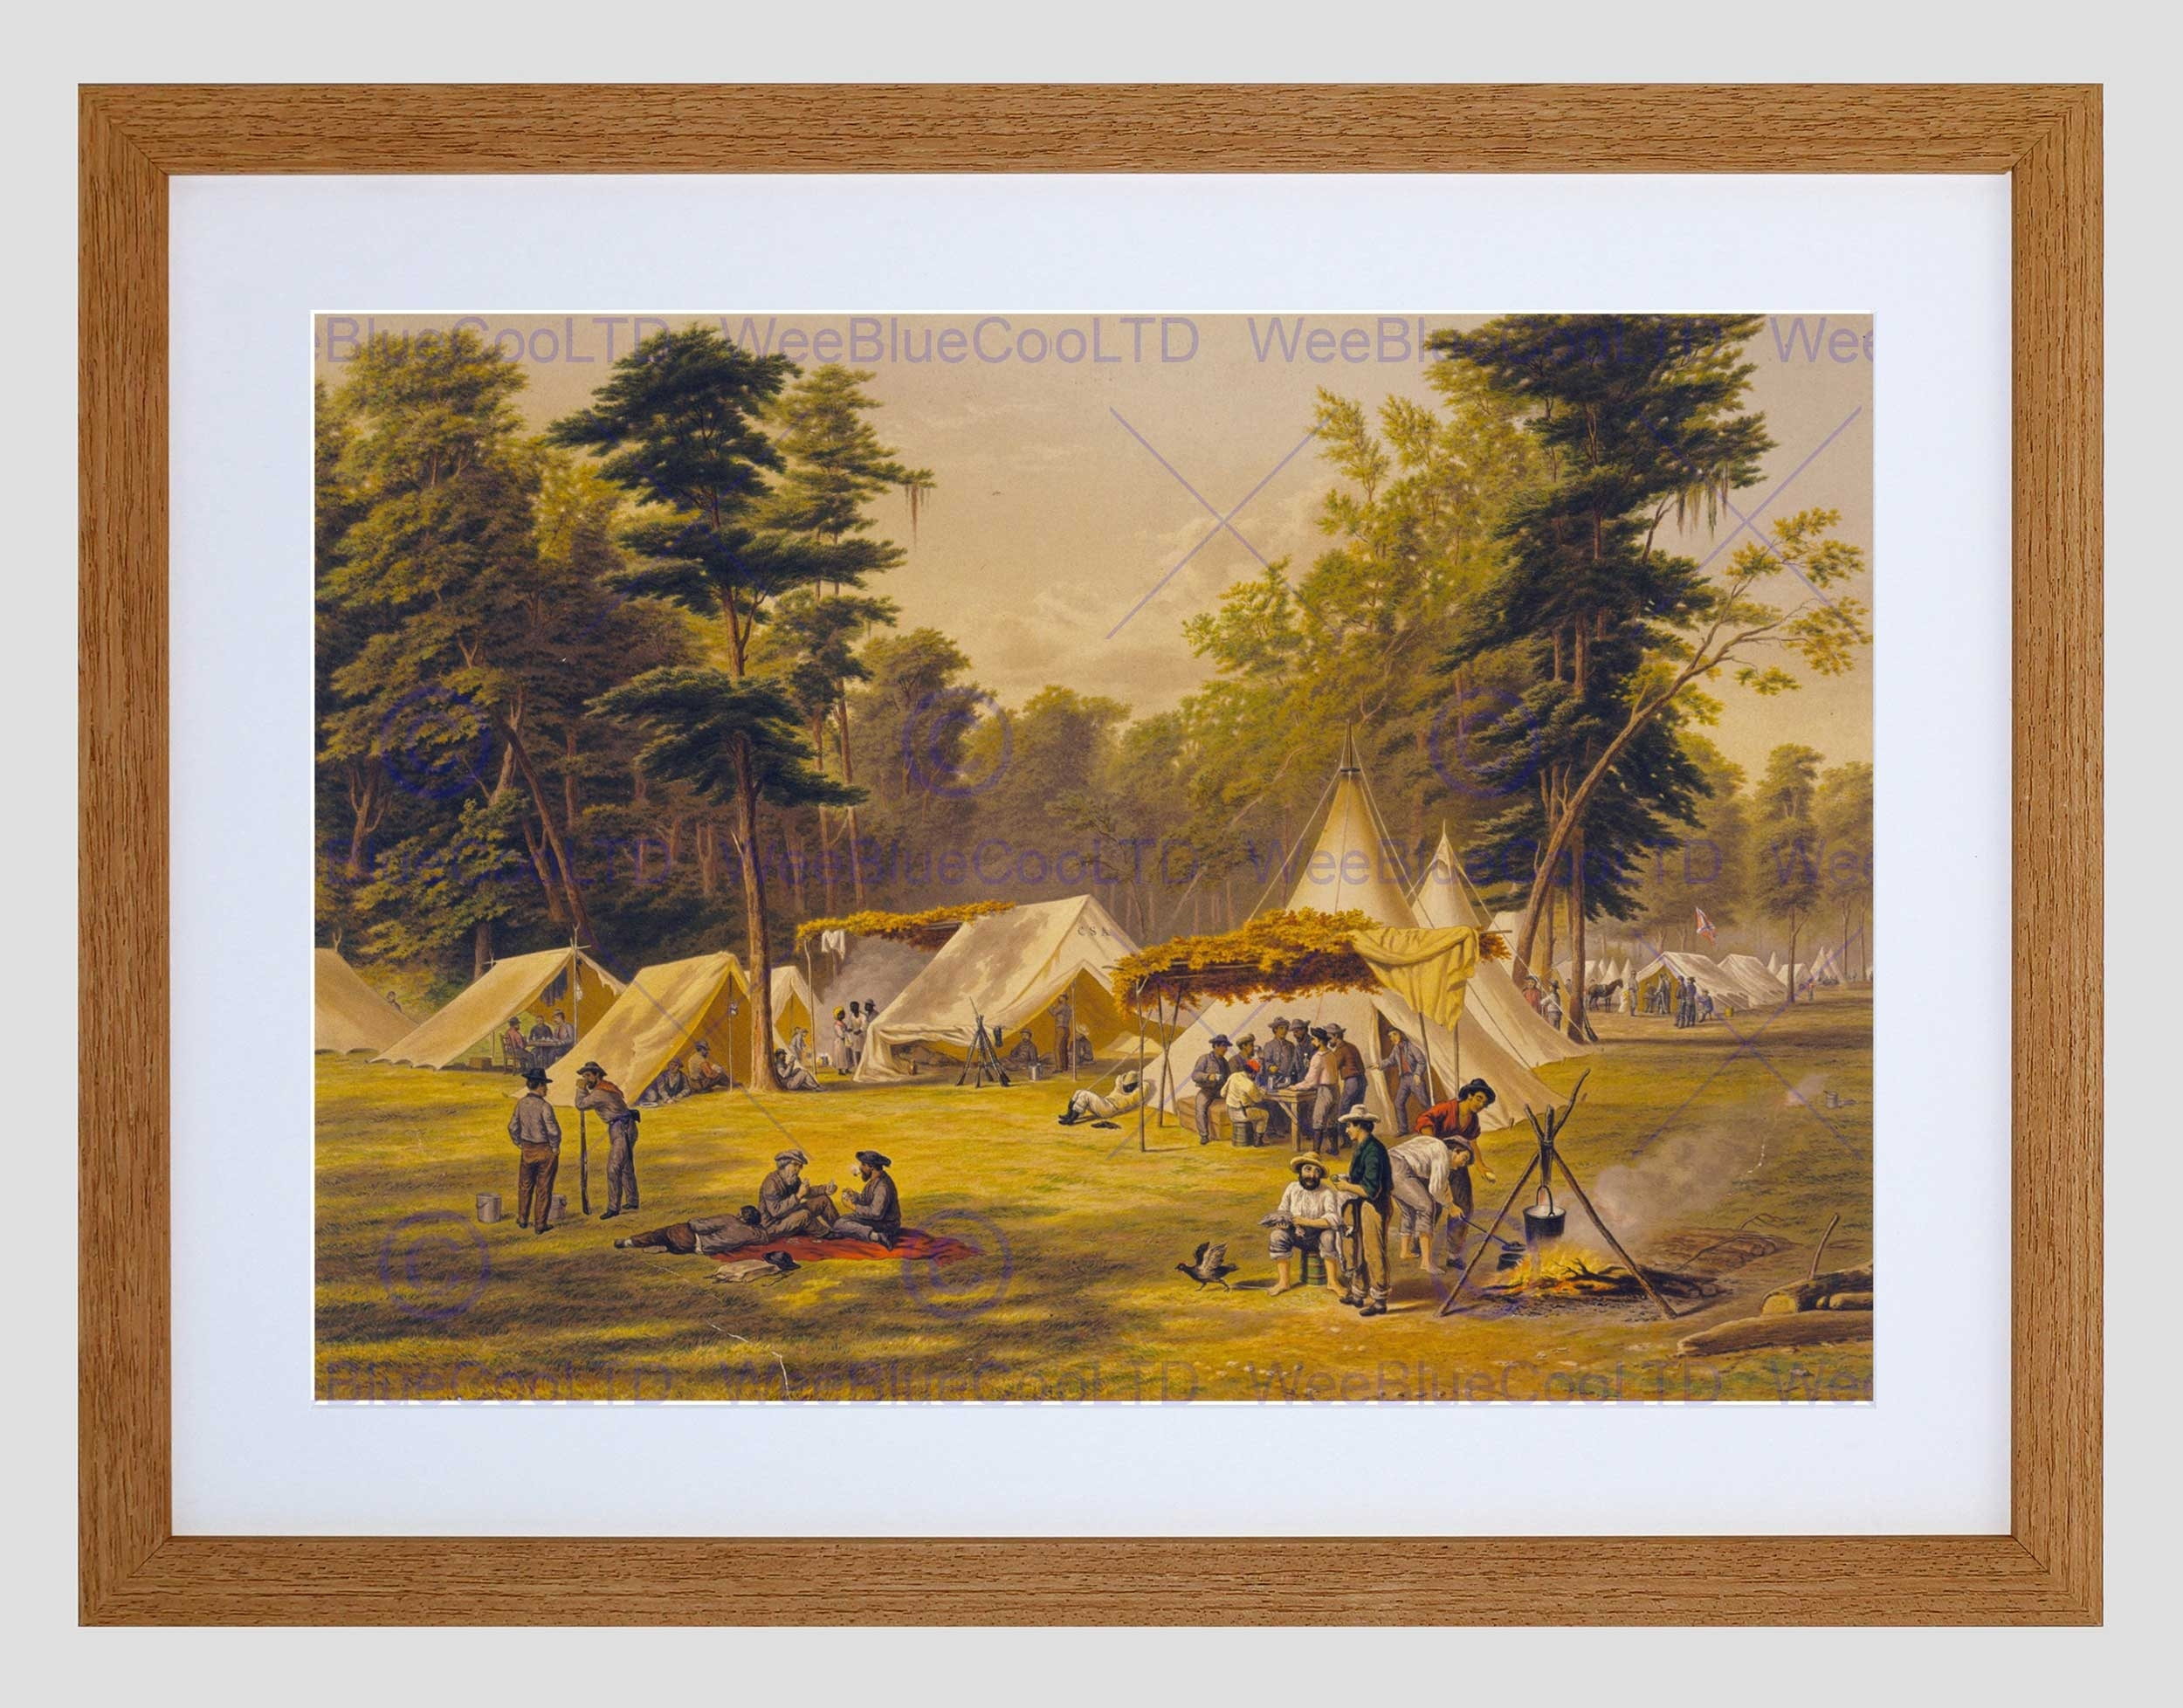 Paintings Confederate Army Camp American Civil War Framed Art pertaining to Most Recent Confederate Framed Art Prints